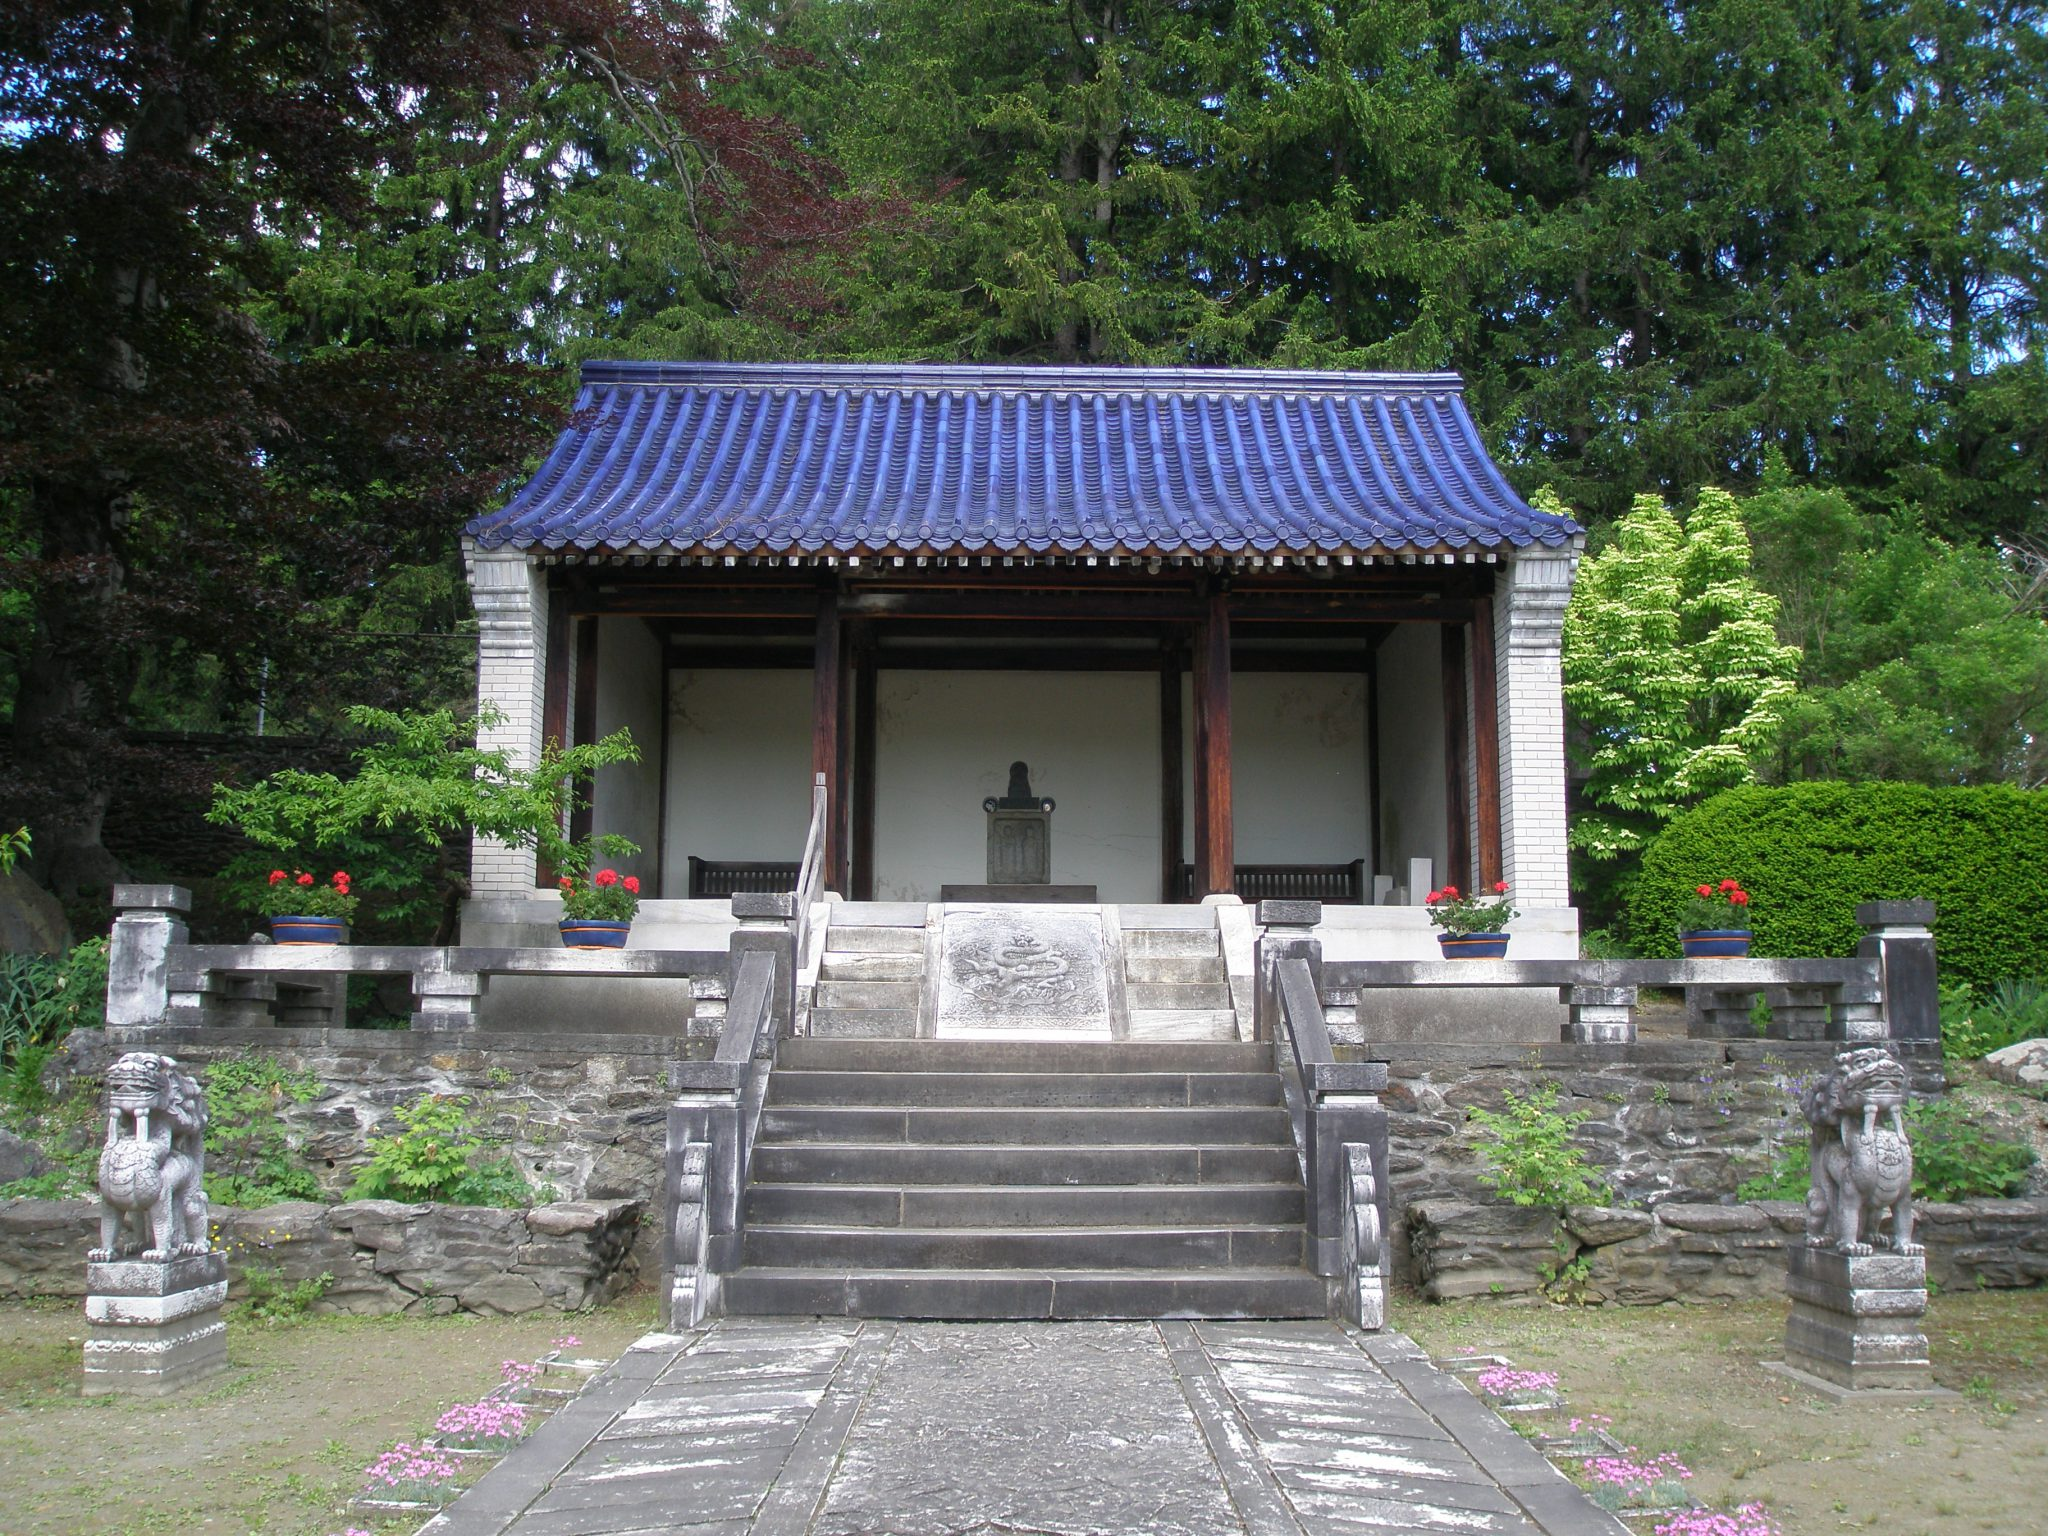 A Temple adorns the highest point in the Chinese Garden